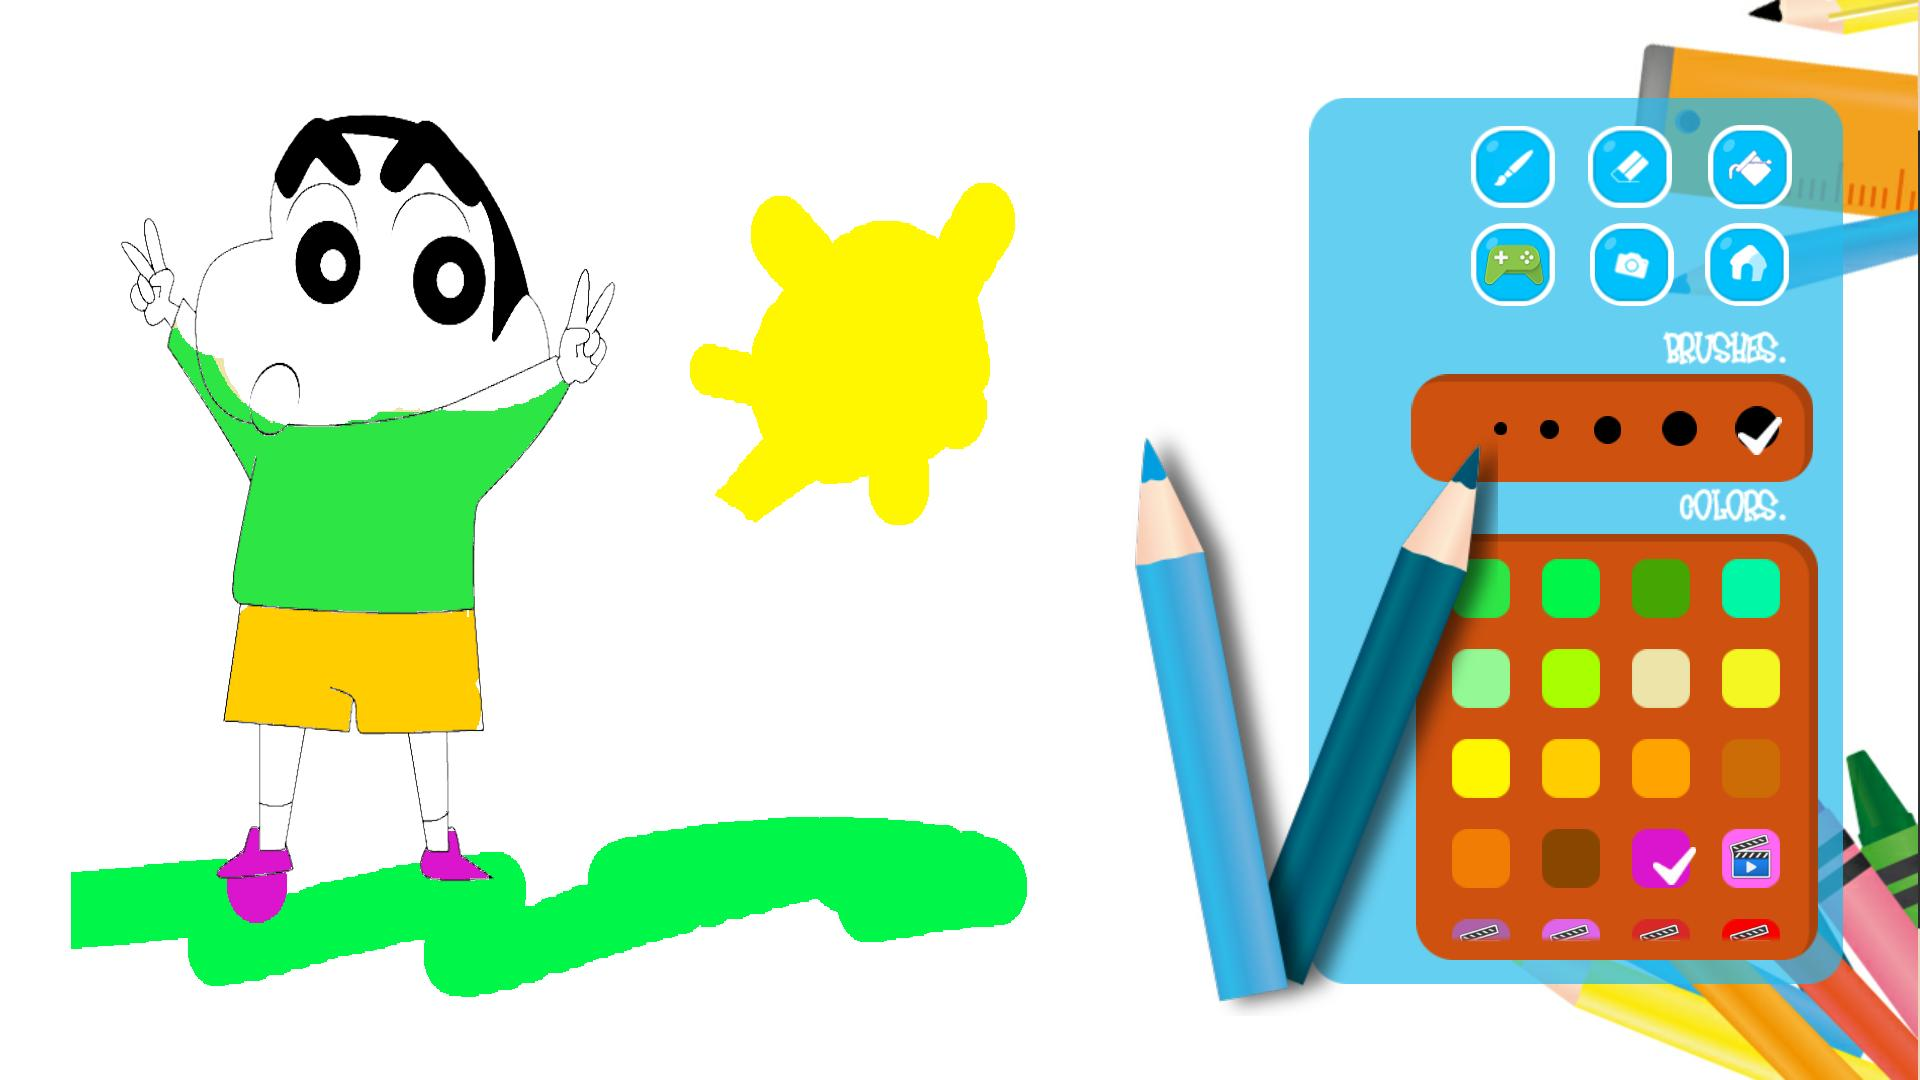 Shin chan painting game for kids for Android - APK Download